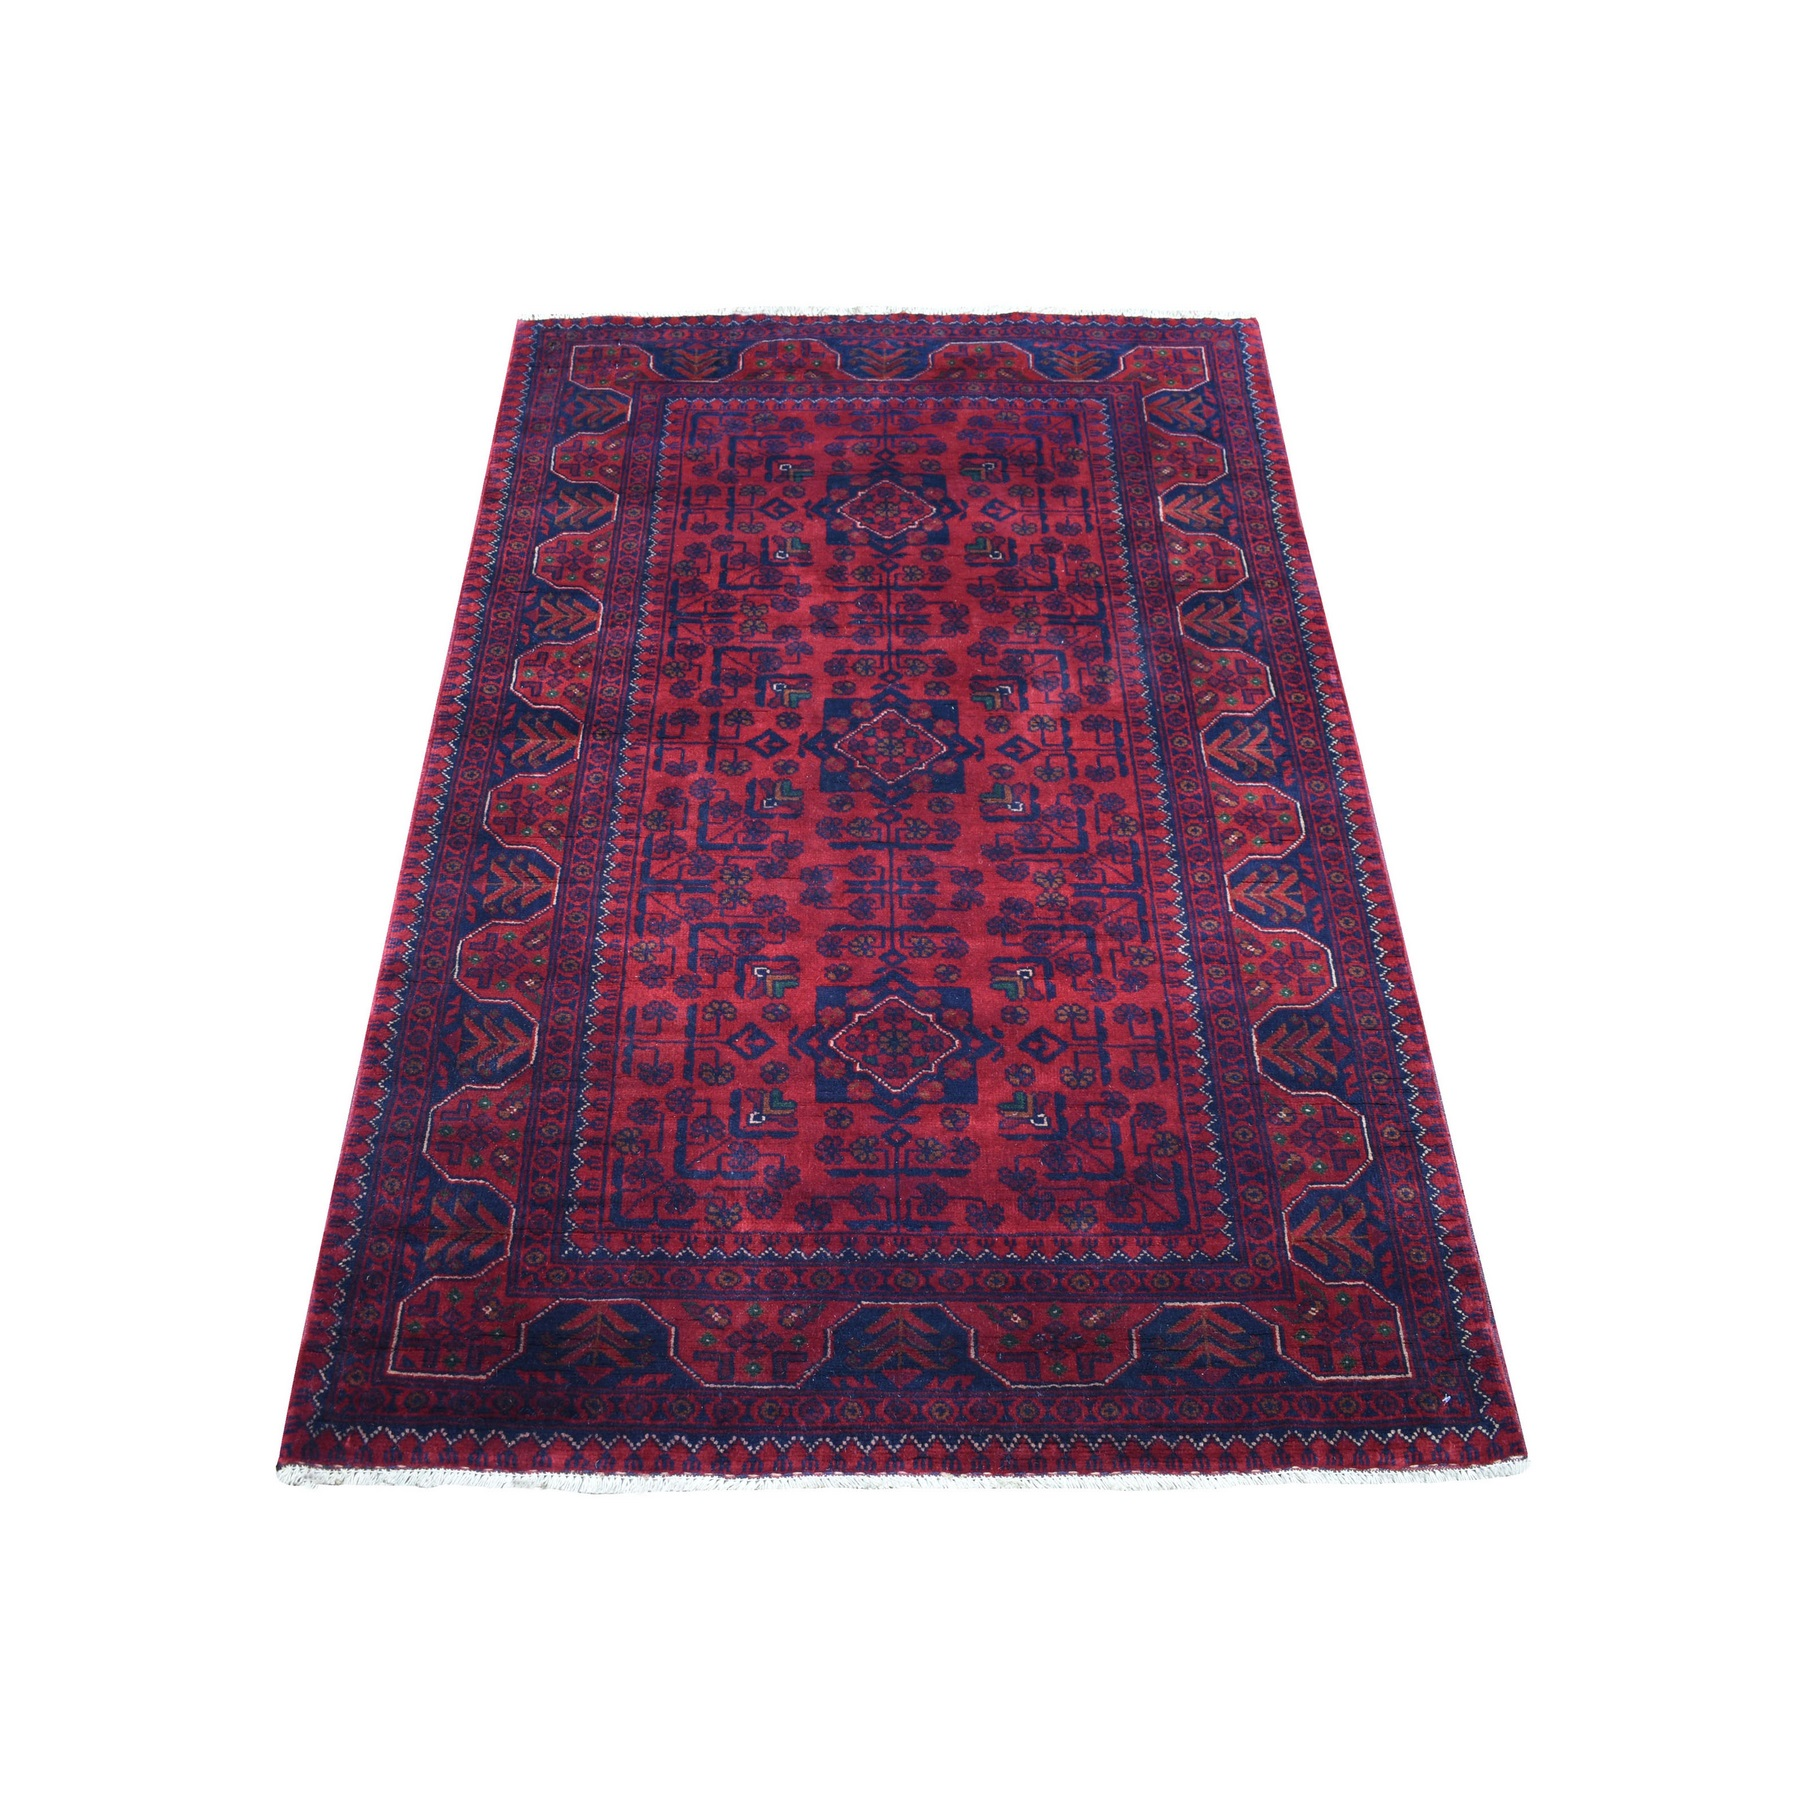 Nomadic And Village Collection Hand Knotted Red Rug No: 1136192